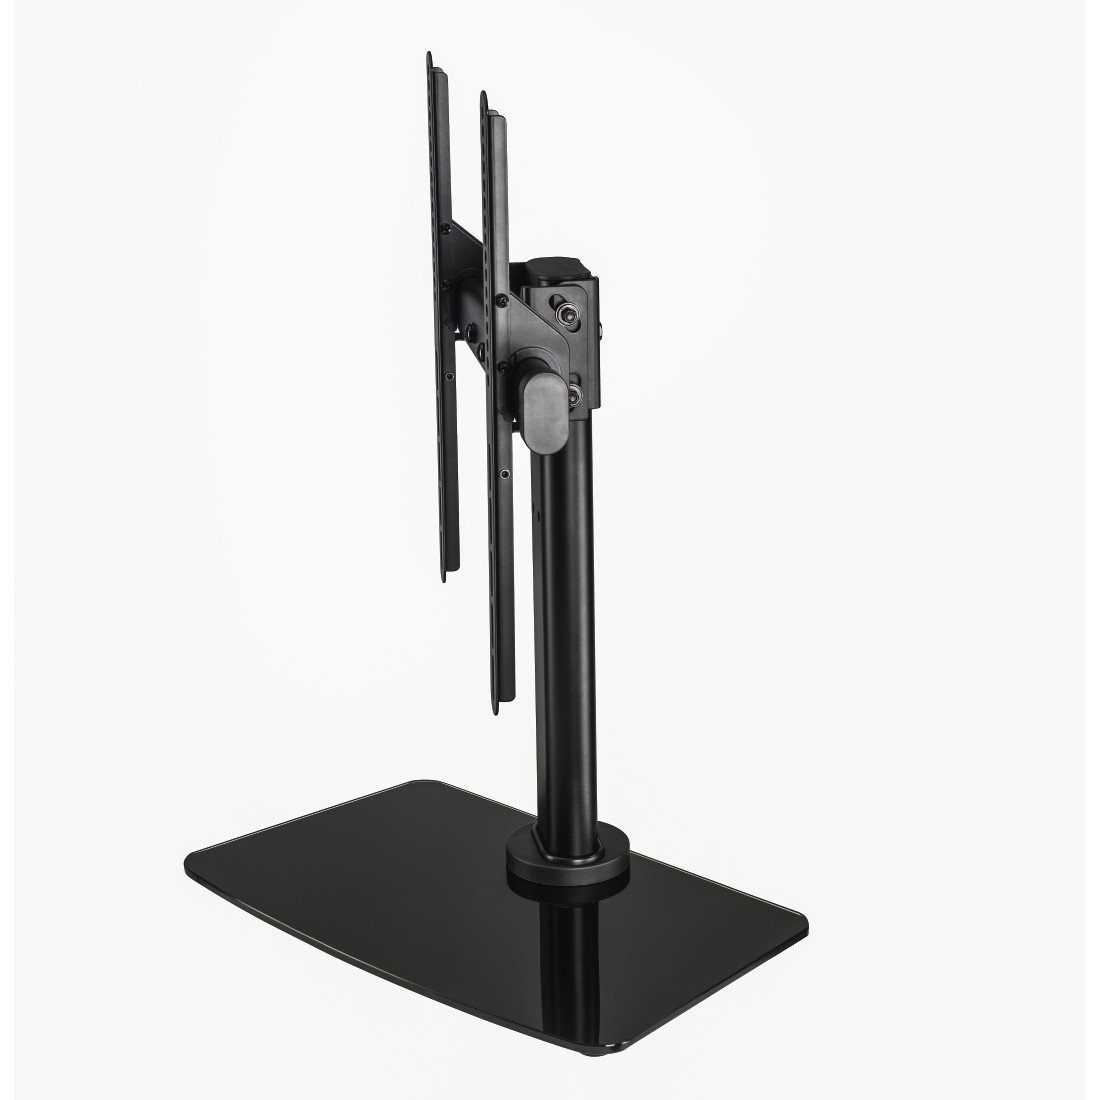 "dex9 High-Res Detail 9 - Hama, Socle TV, FULLMOTION, 165 cm (65""), noir"